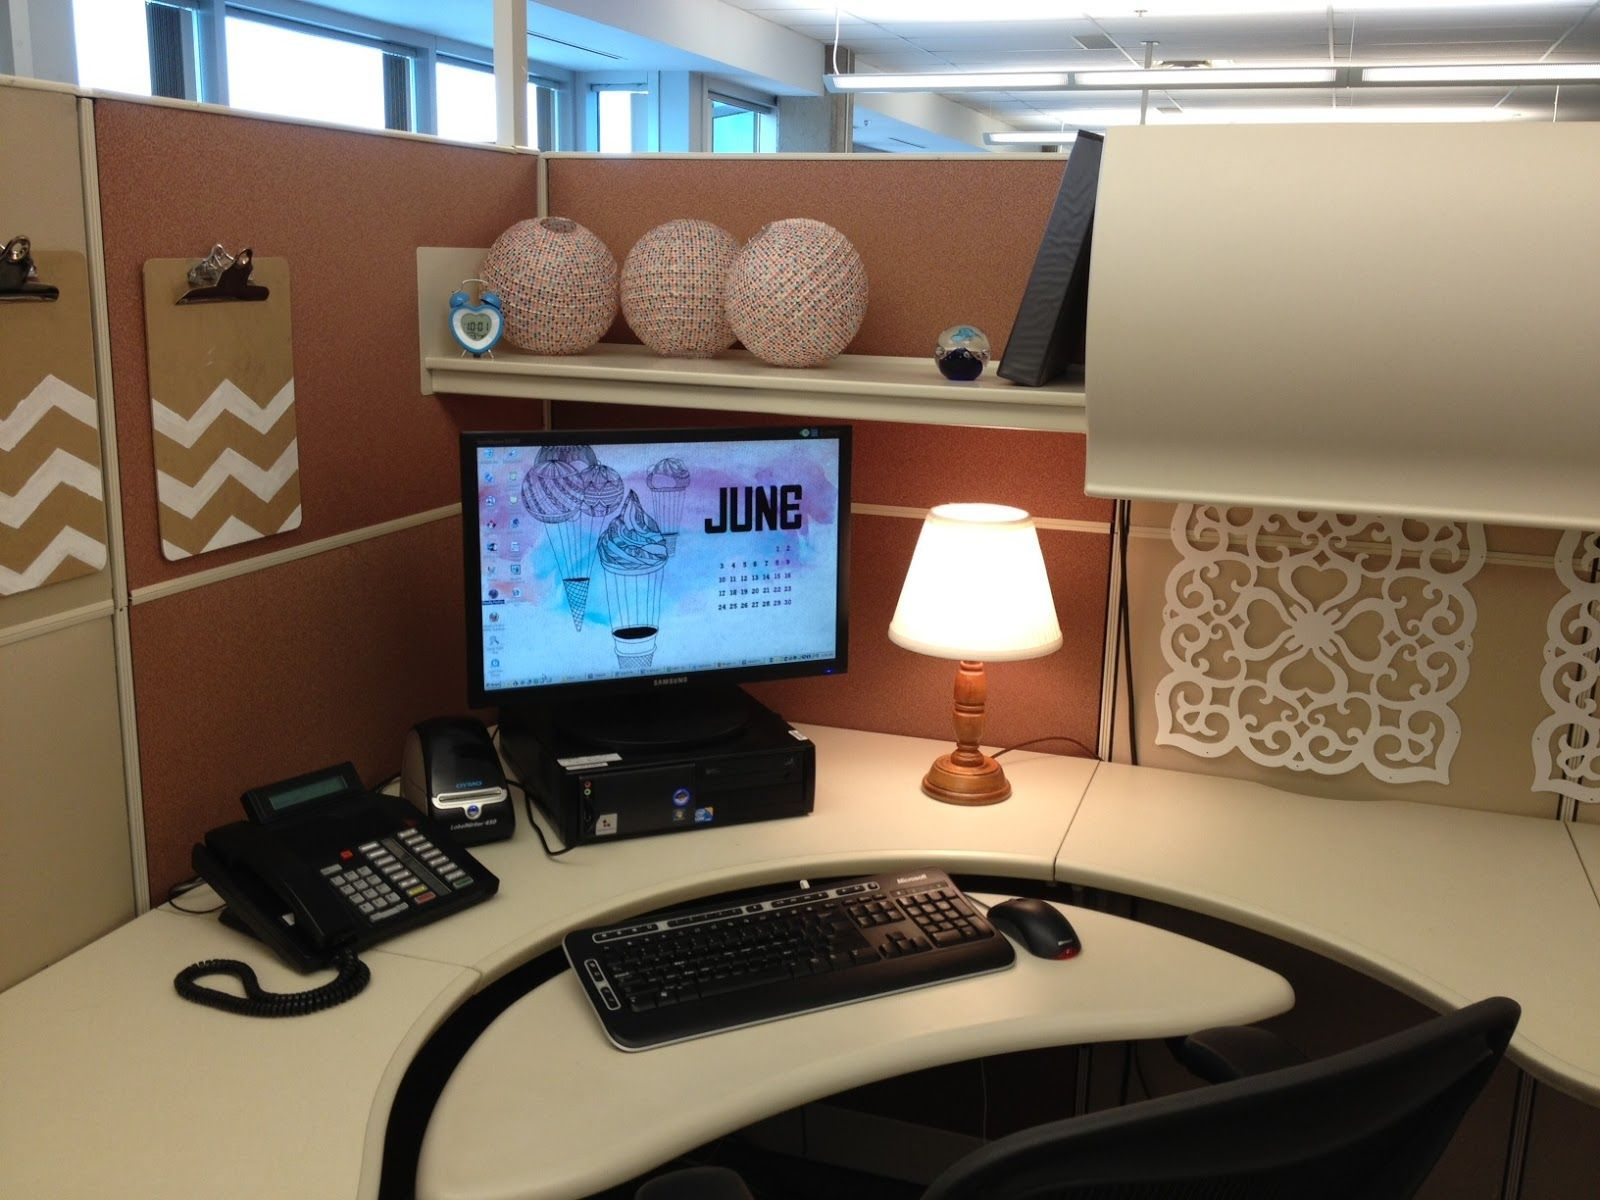 Cubicle Decorating Ideas Enchanting 20 Cubicle Decor Ideas To Make Your Office Style Work As Hard As Review